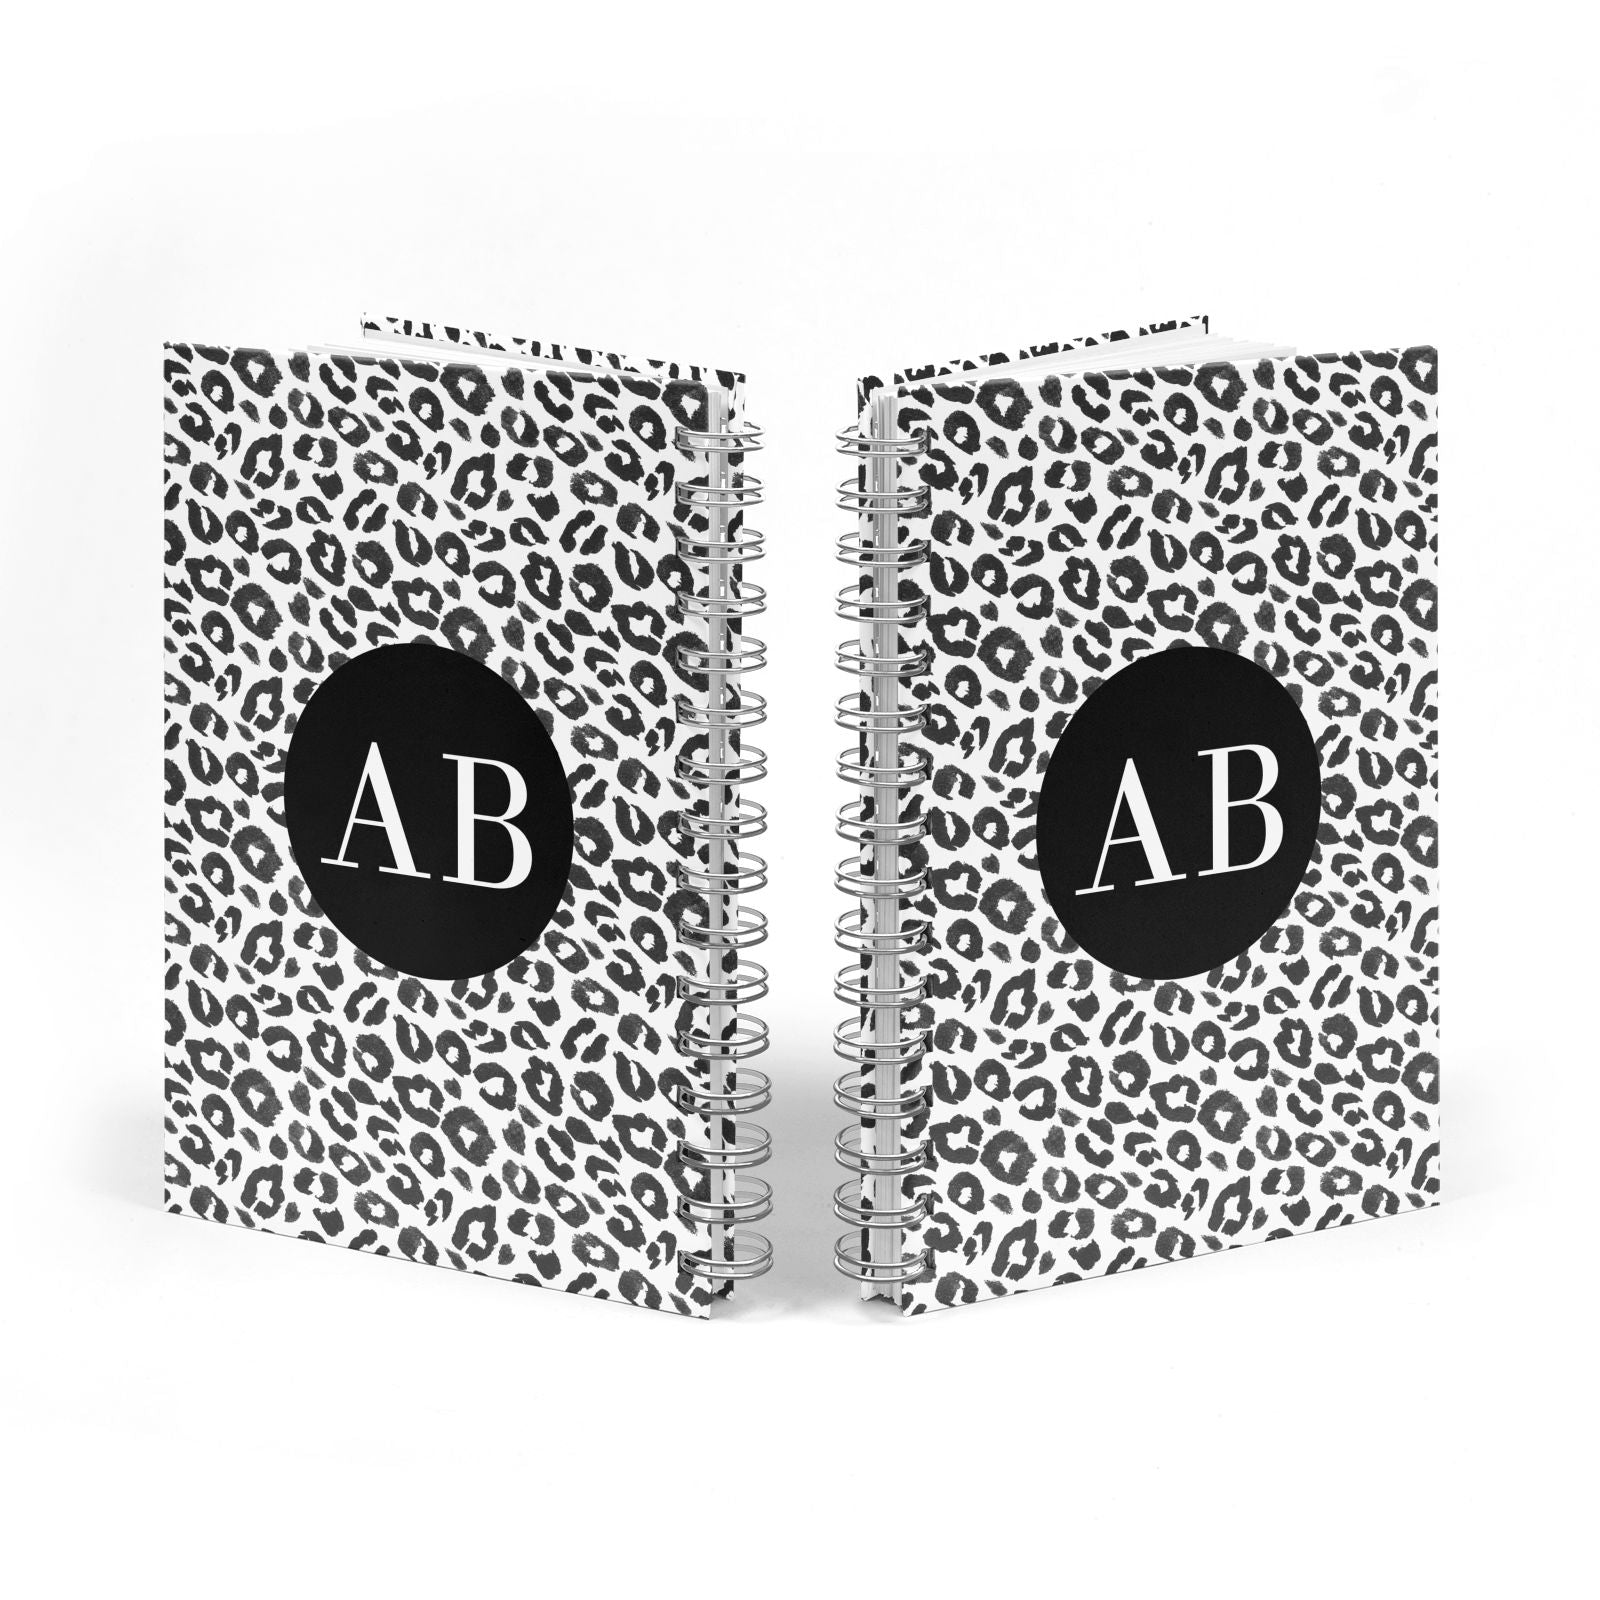 Leopard Print Black and White Notebook with Silver Coil Spine View